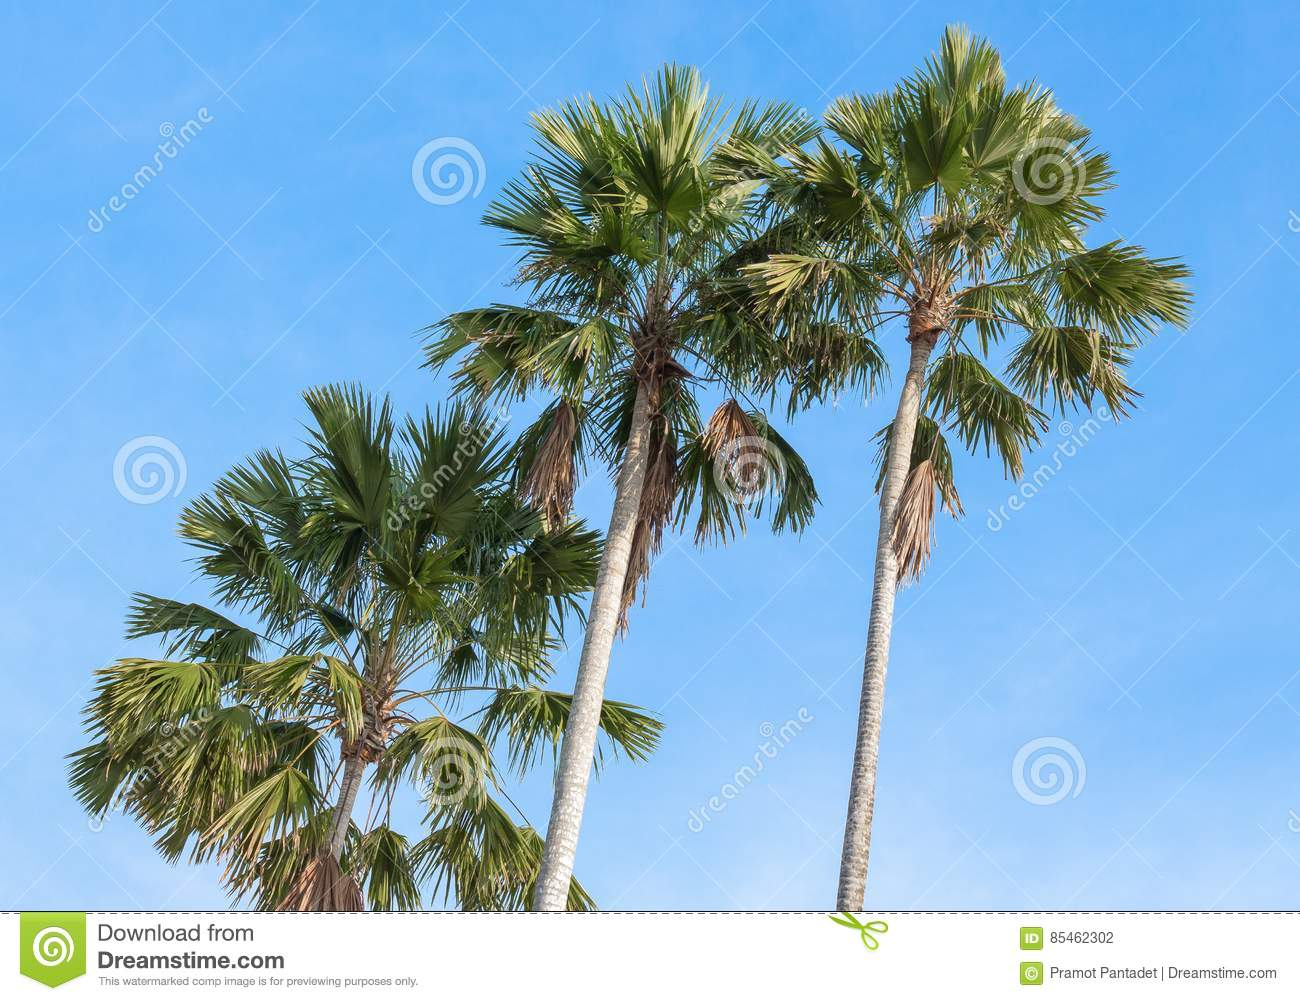 Palm trees on a background of blue sky.